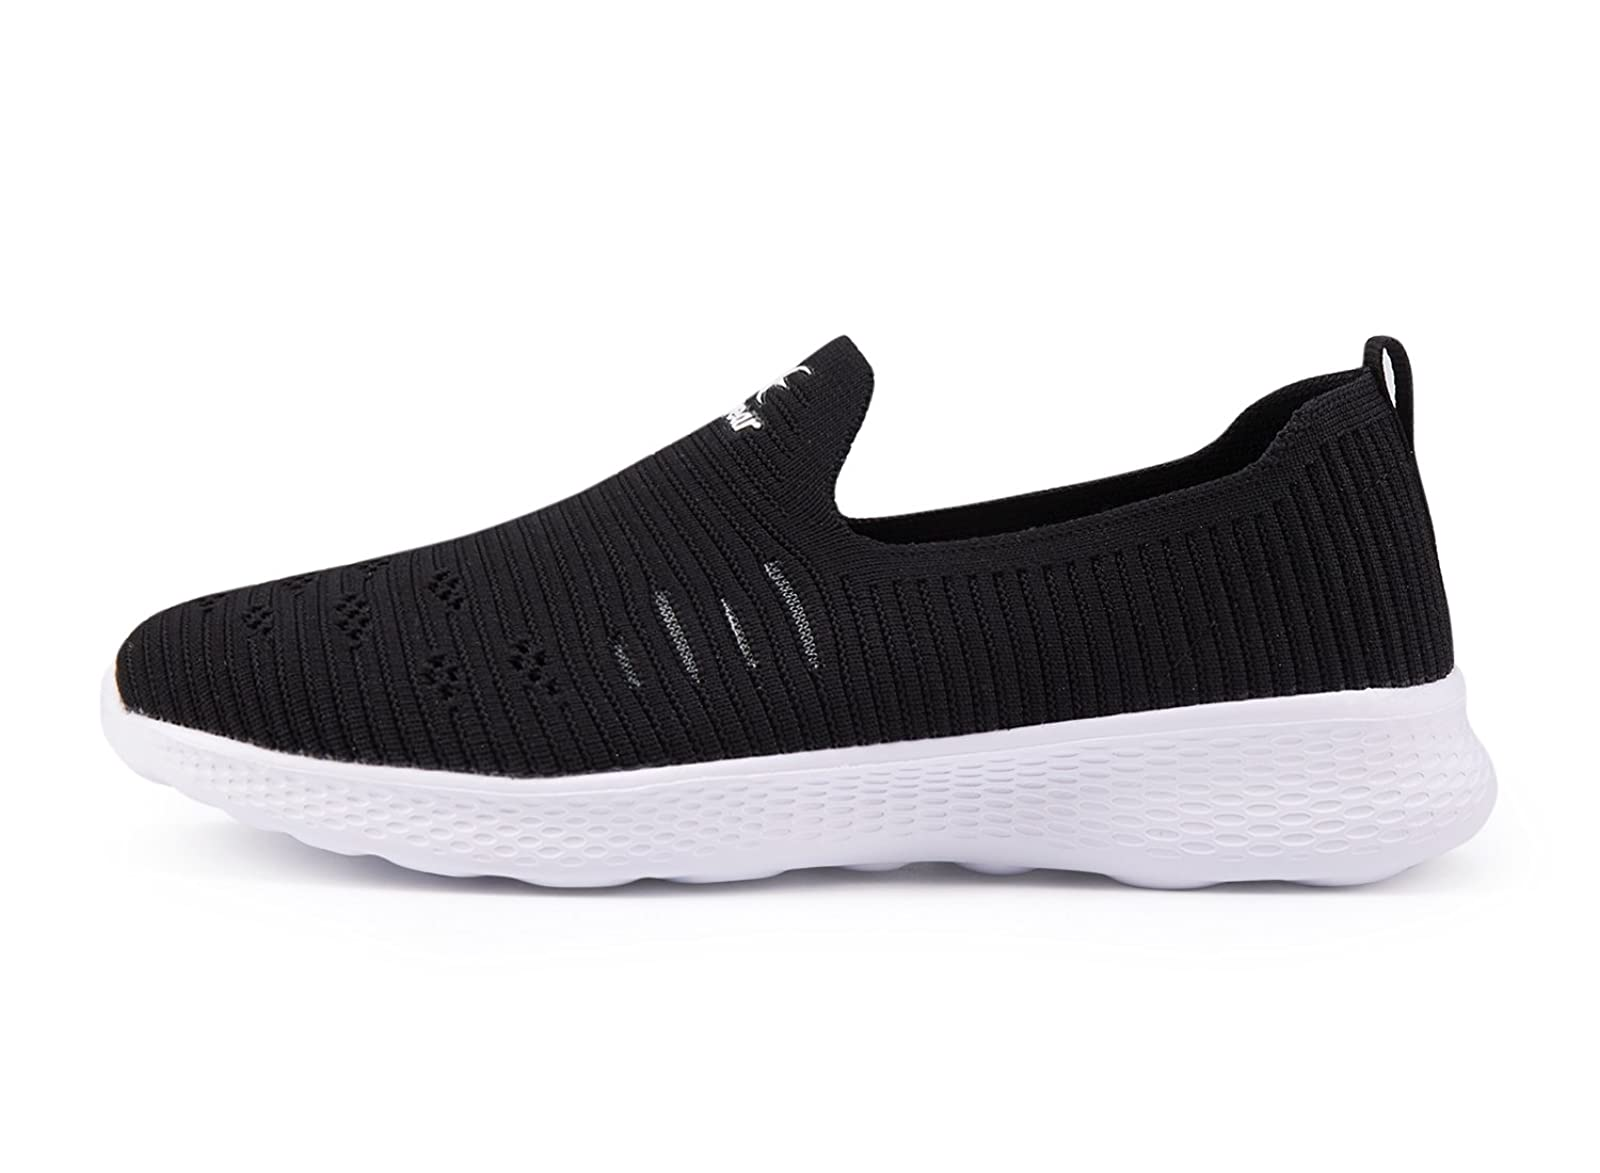 b8826b65b89f Ezywear Womens Slip on Shoes - EZ83834 Light - 1 ...